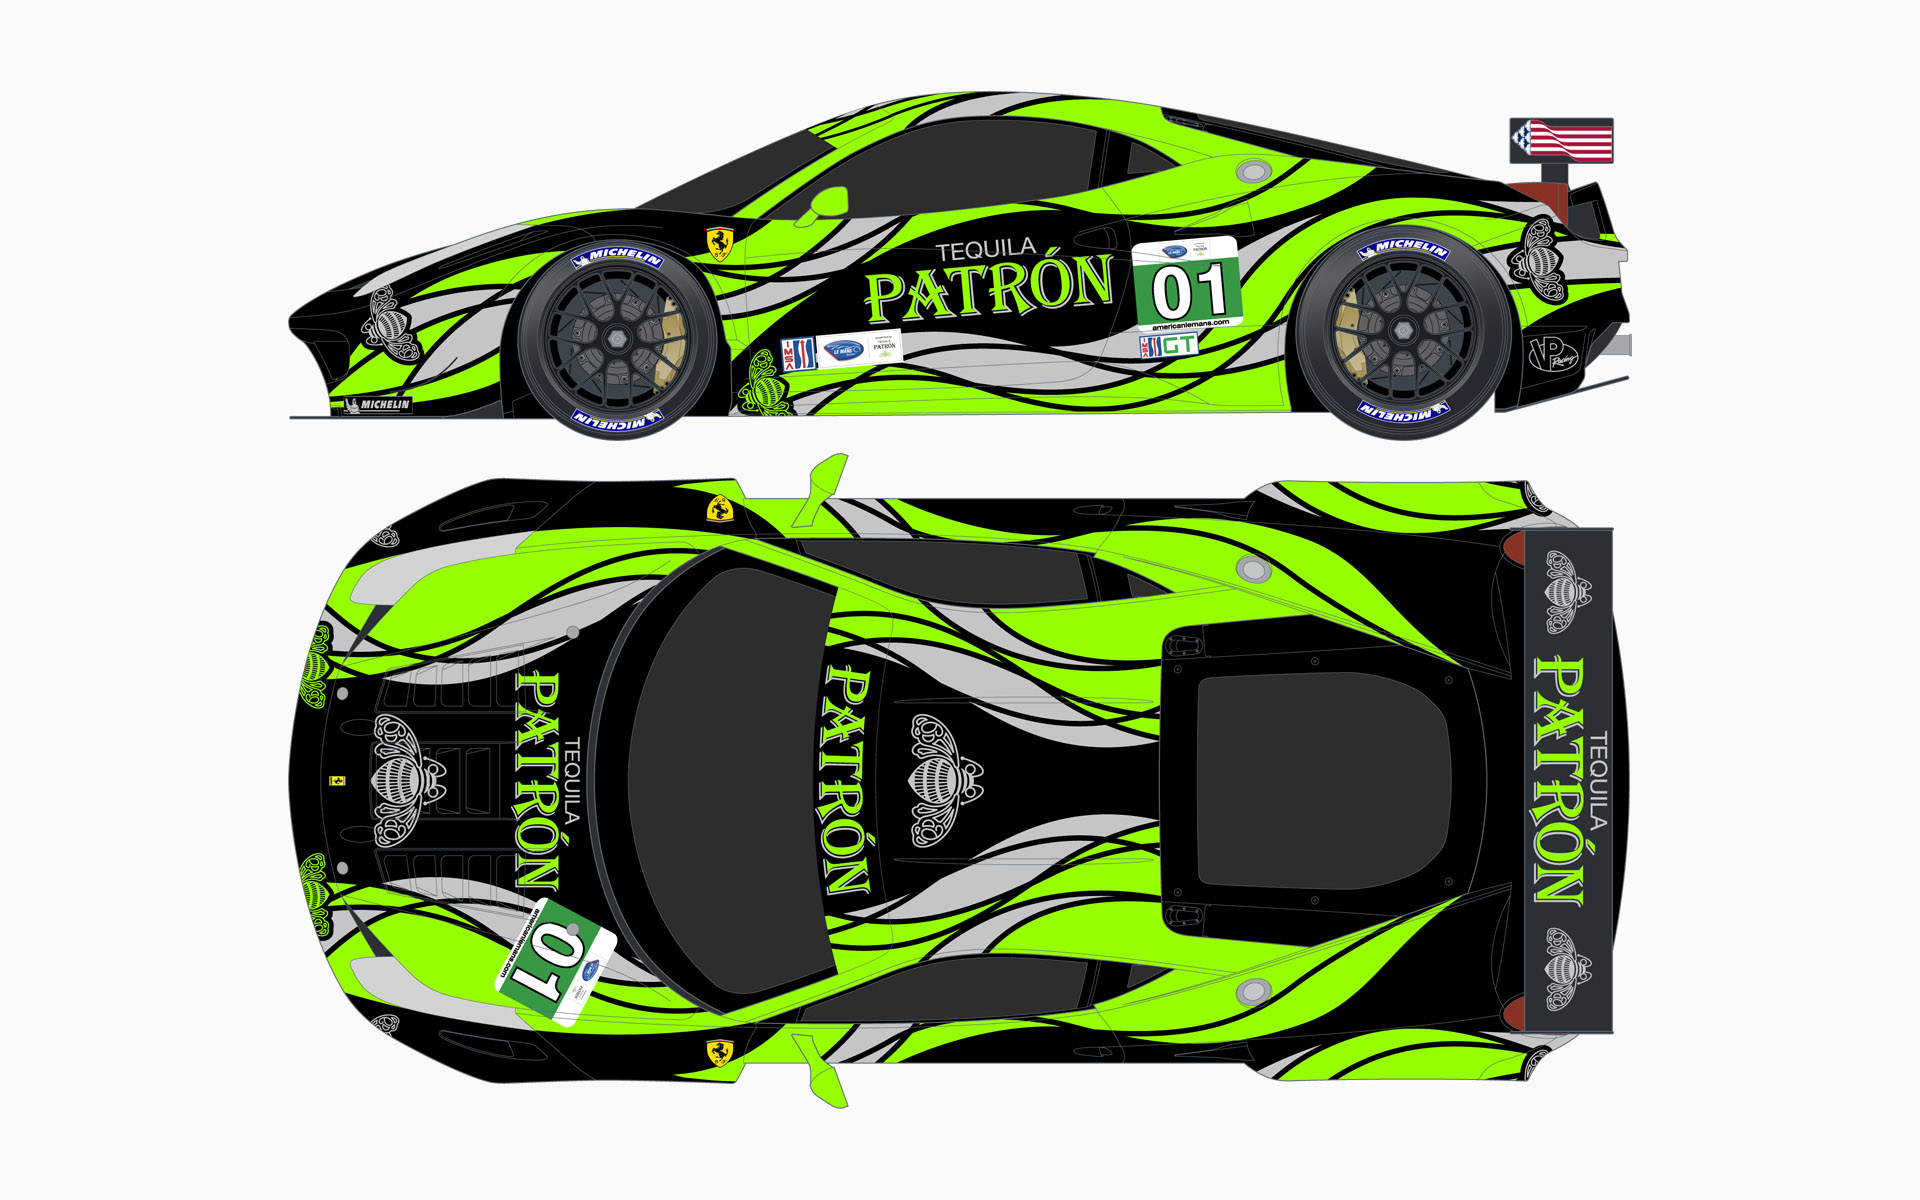 2013 Extreme Speed Motorsports Pátron Ferrari 458 GT Livery Elevations